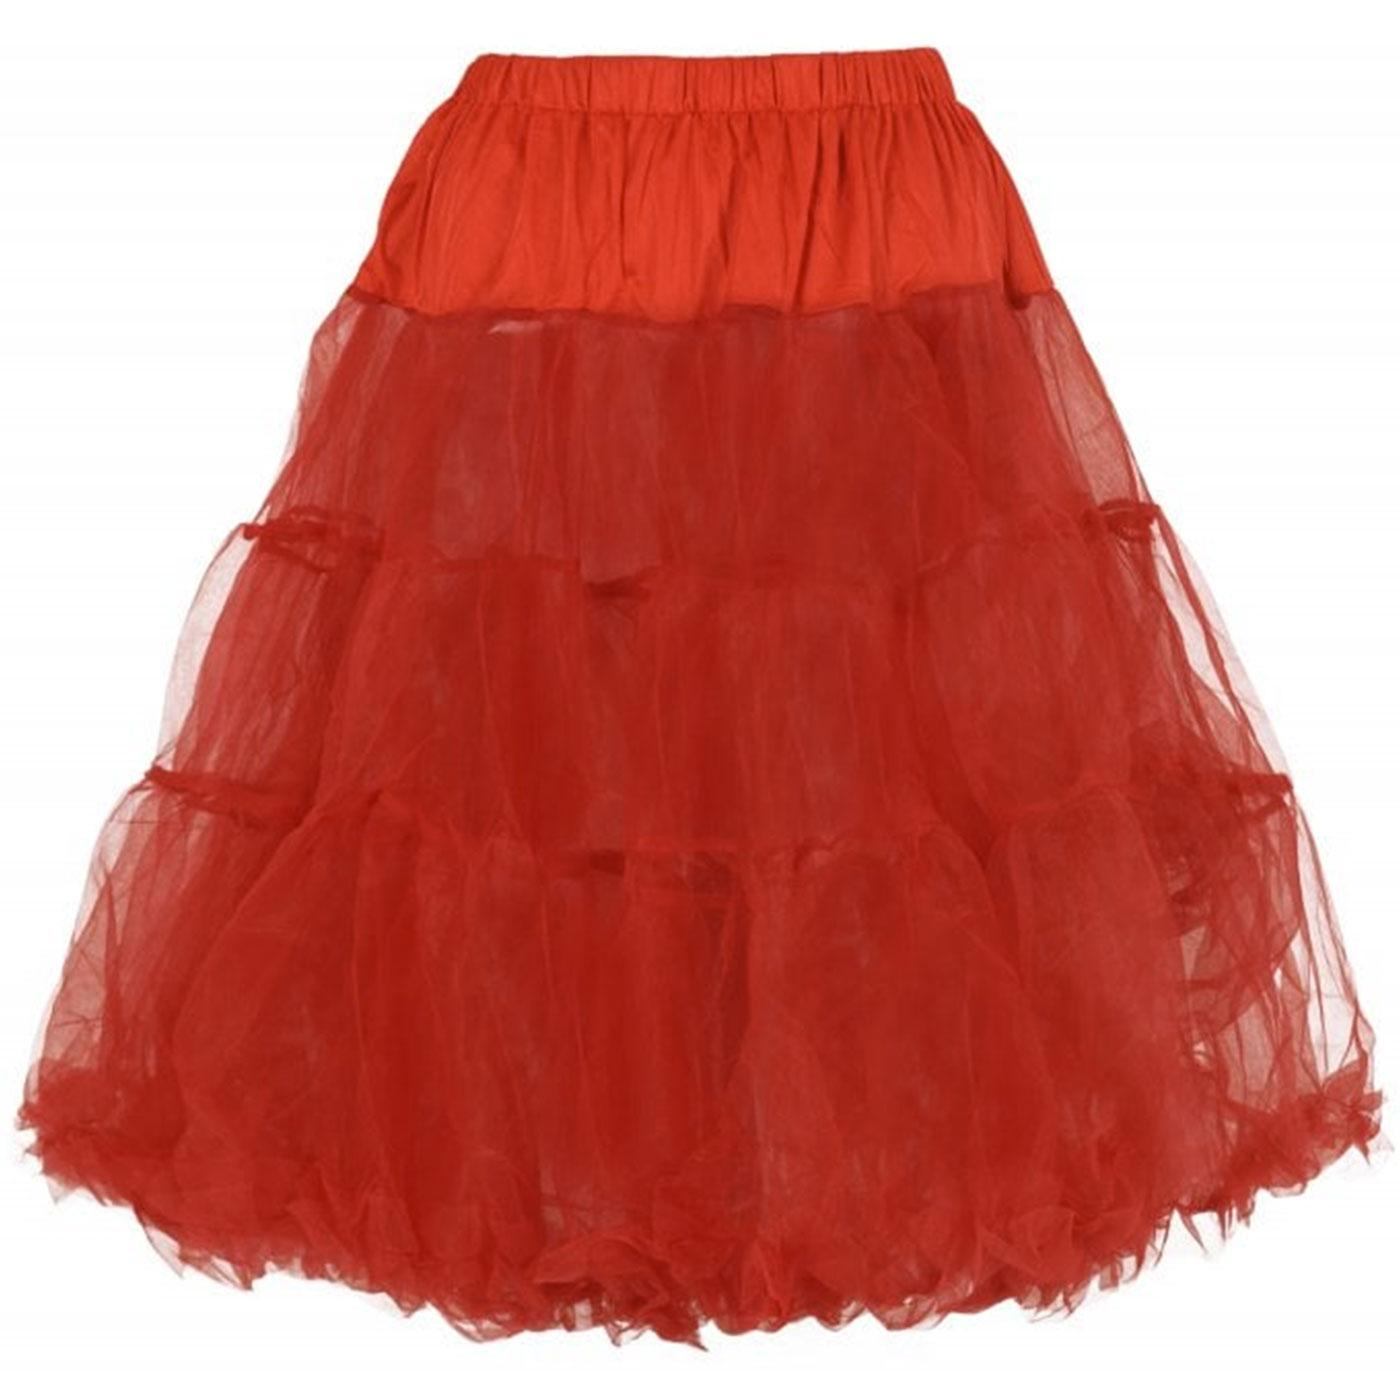 Maddy COLLECTIF Retro Vintage Petticoat in Red